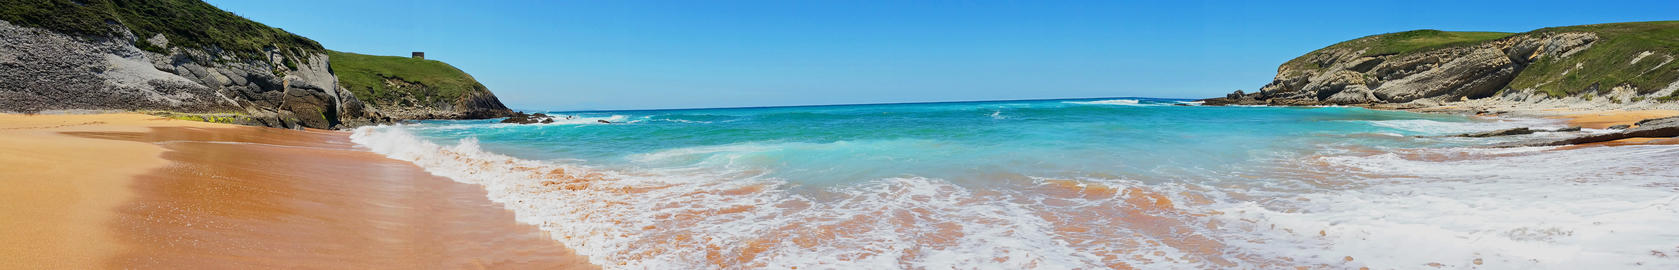 Beach with beautiful waves and blue sky, landscape. Panoramic photo フォト